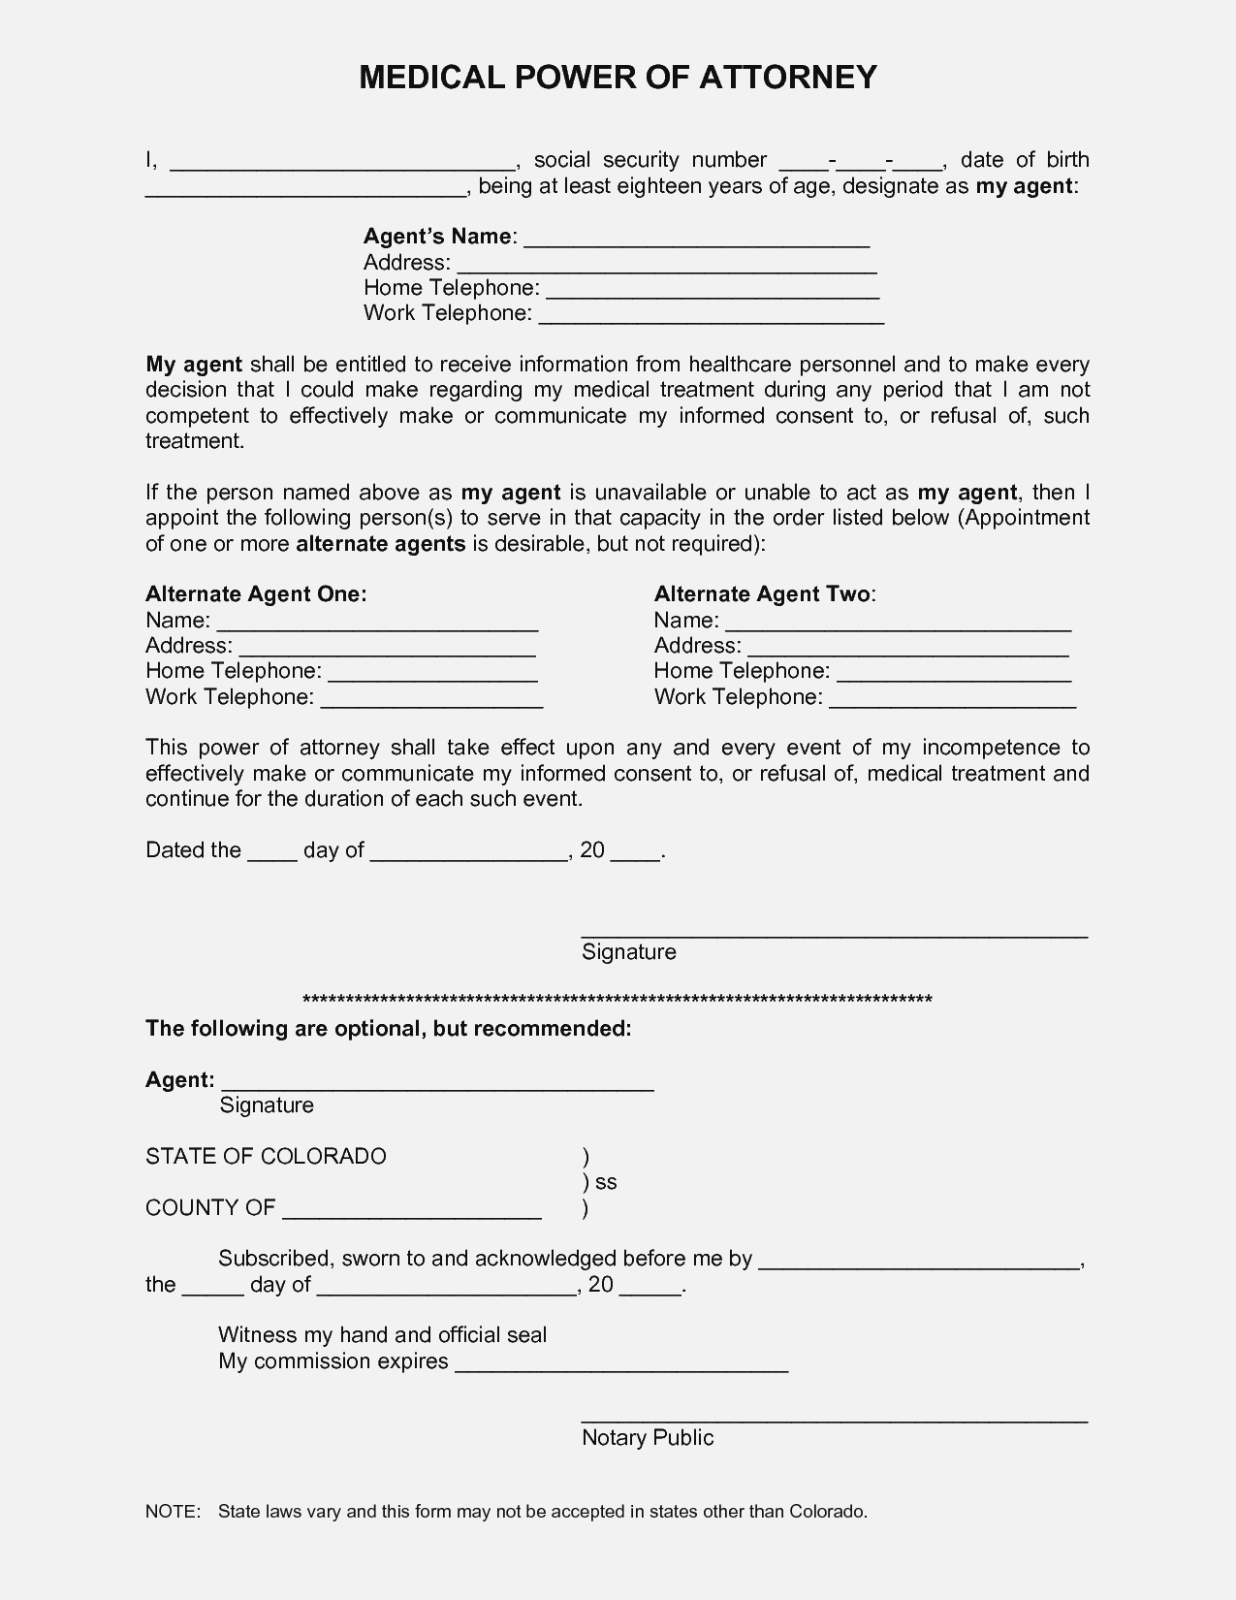 Best Photos Of Printable Medical Power Attorney Forms – Free - Free Printable Medical Power Of Attorney Forms